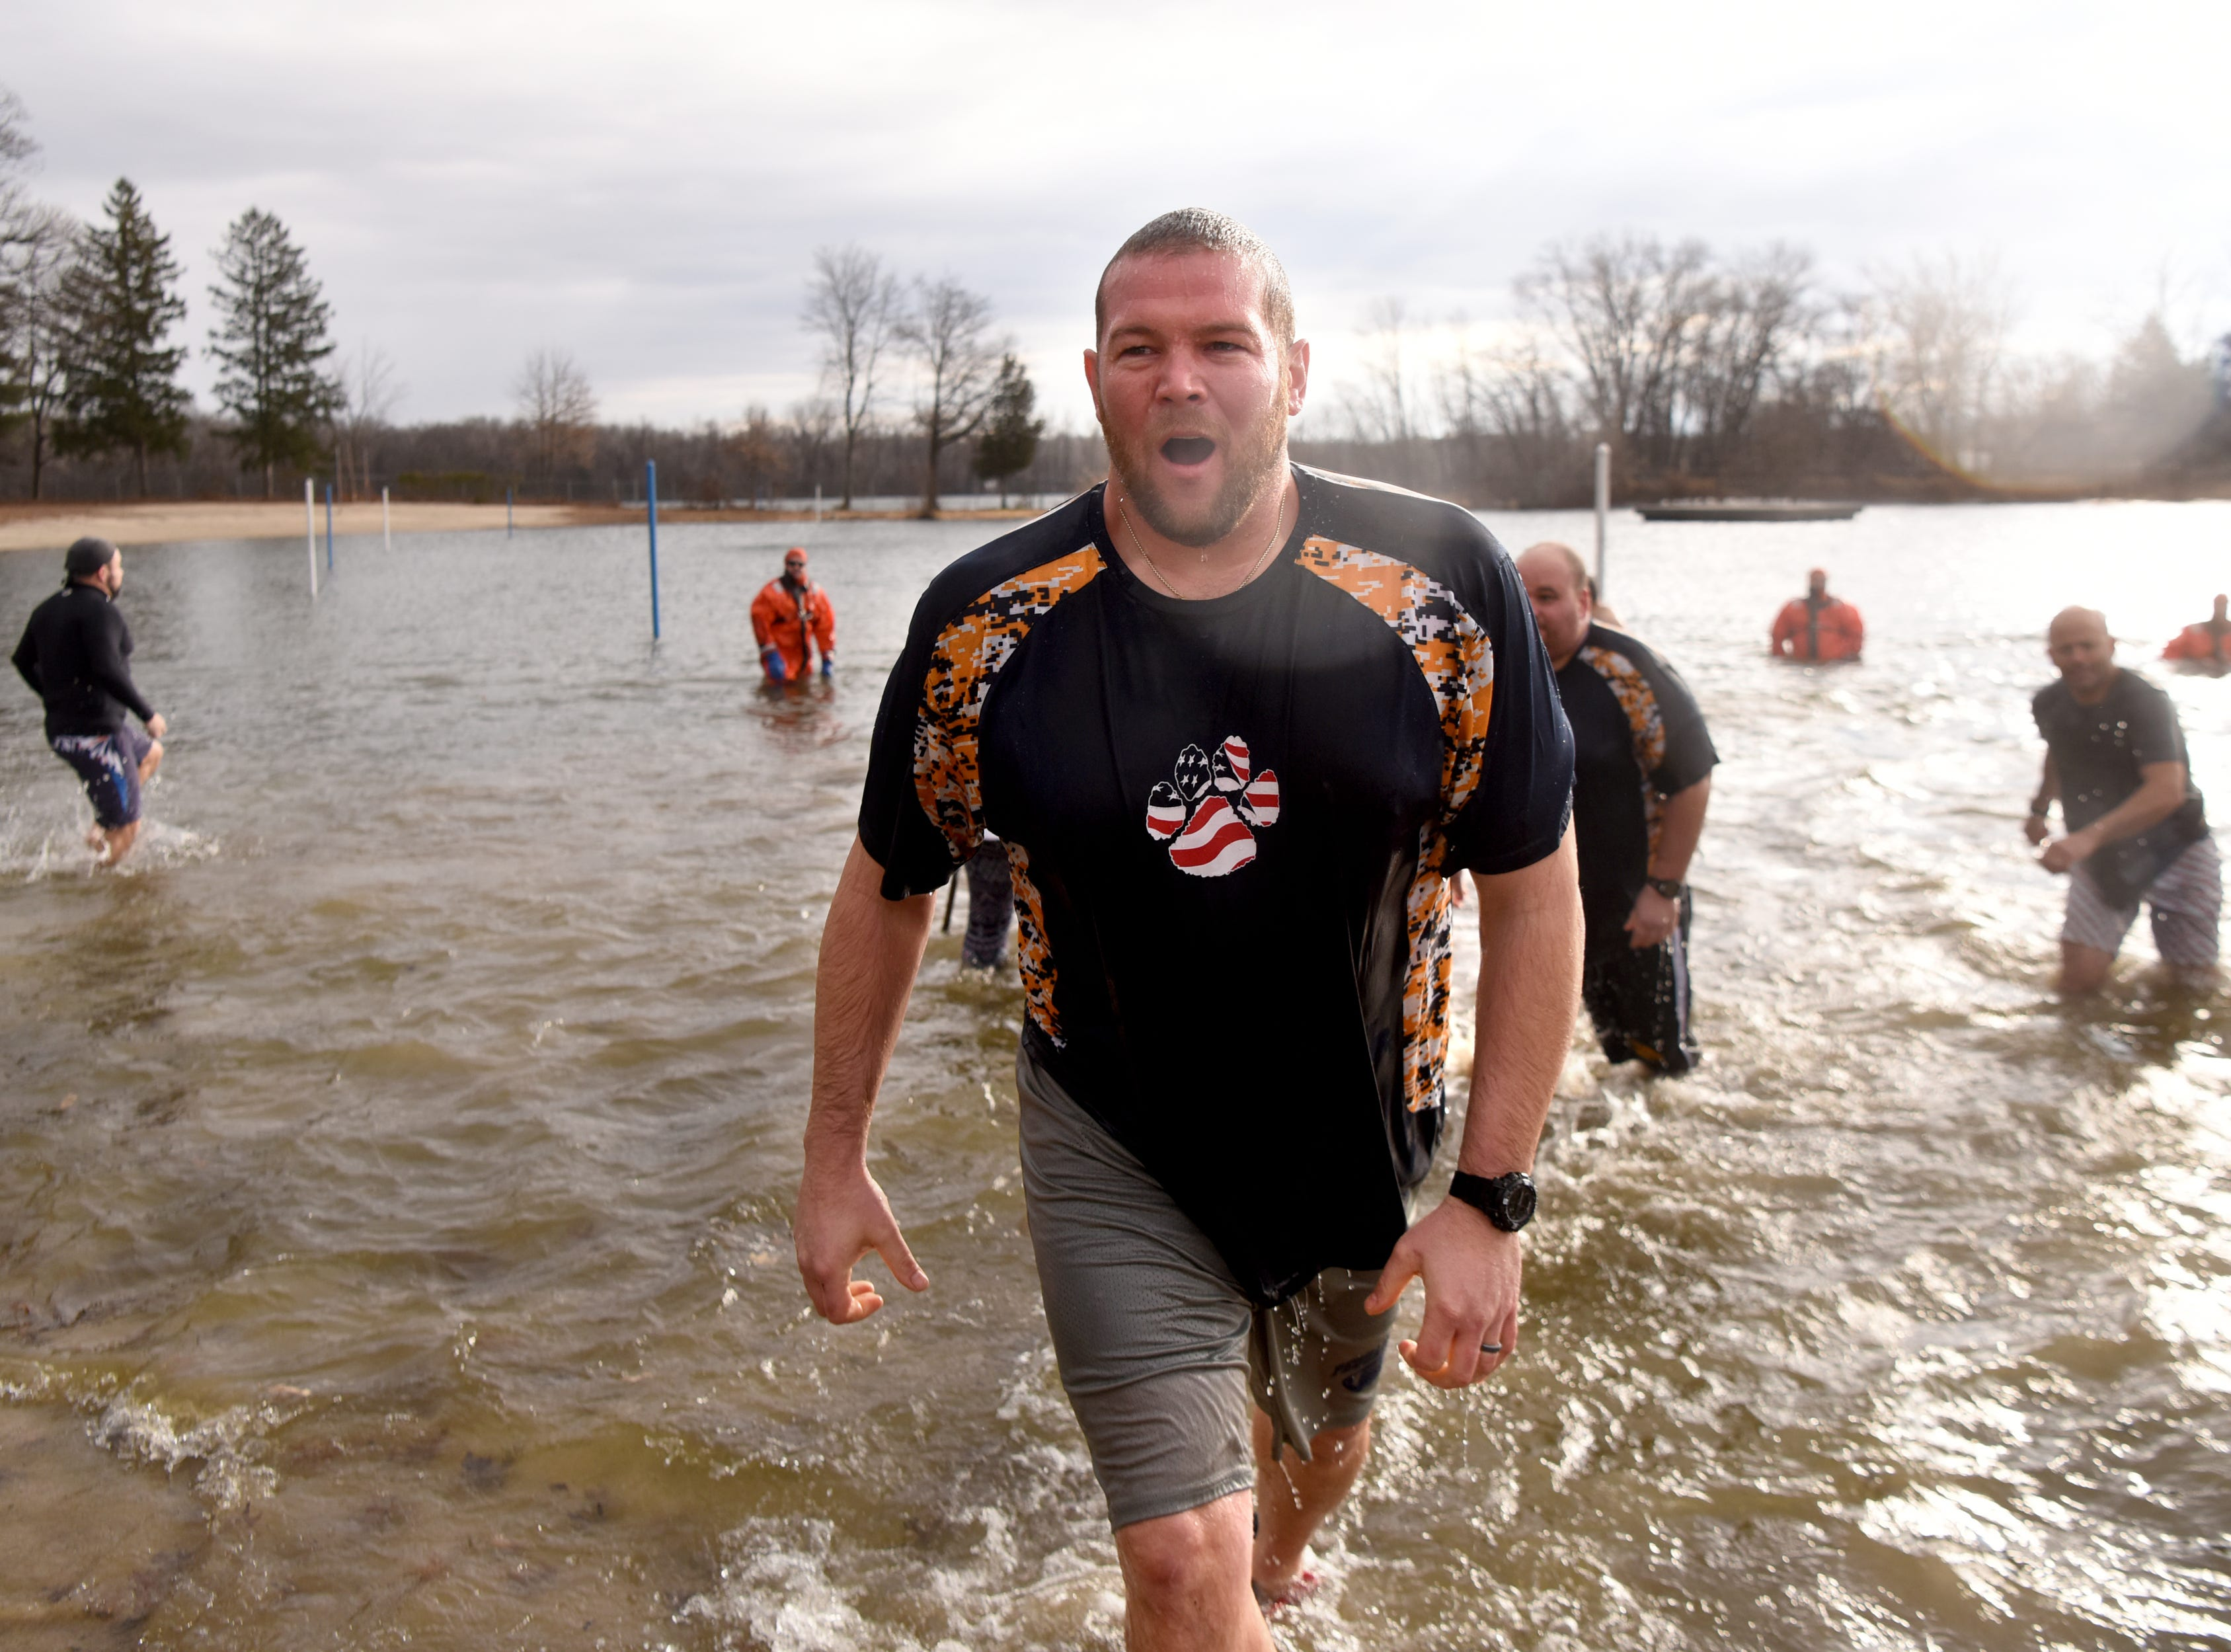 Luke Sica calmly walks out of the lake while participating in the 4th annual Pequannock Polar Plunge in Pequannock Valley Park on Sunday, January 6, 2019.